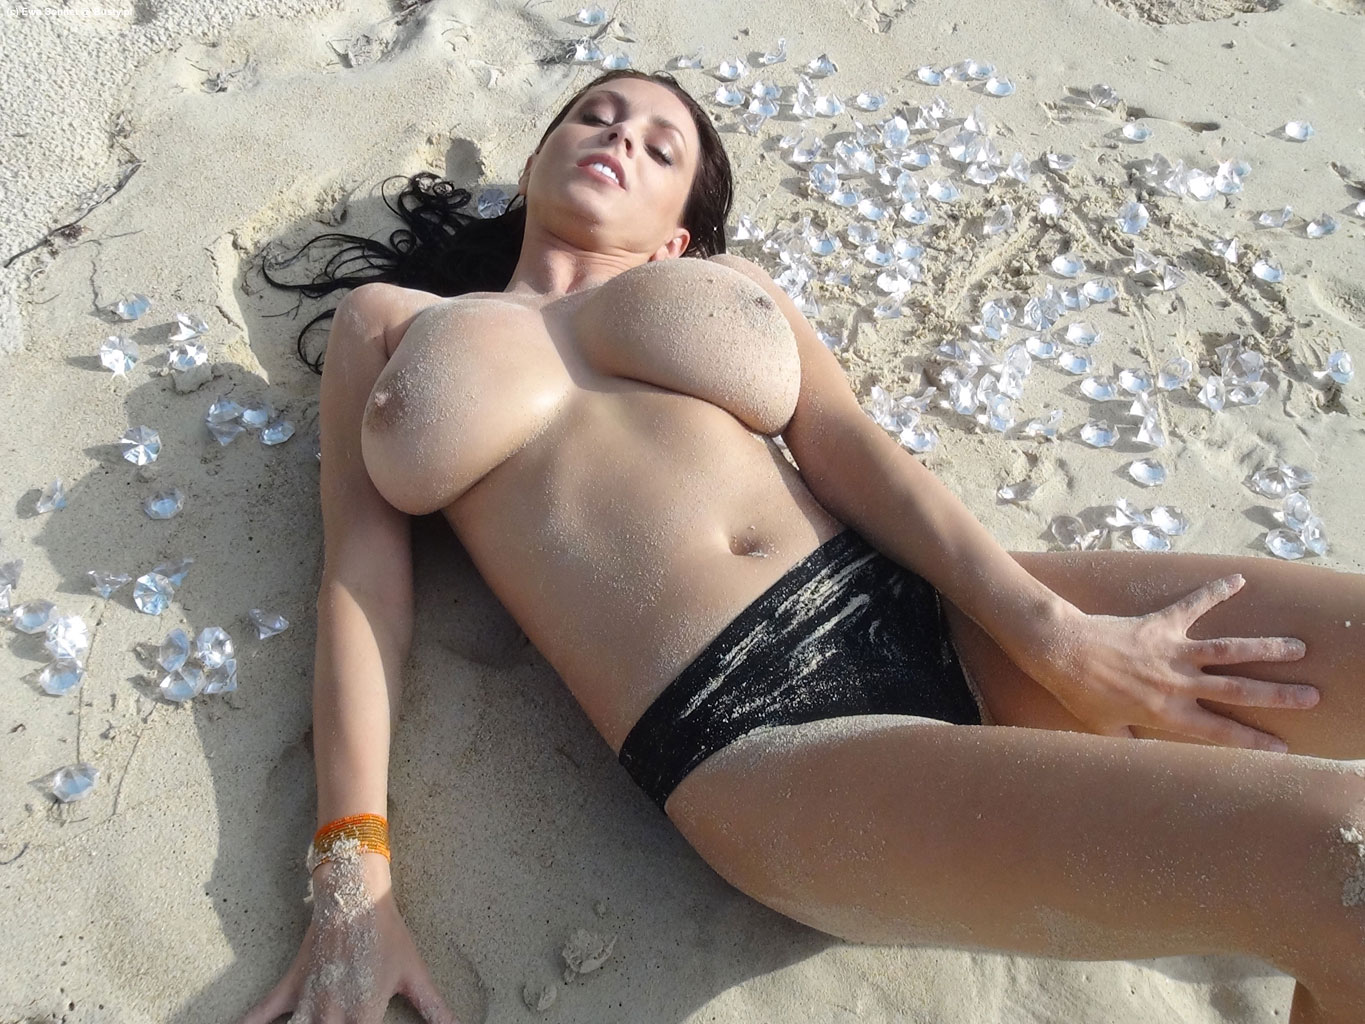 Apologise, Big booty on the beach nude